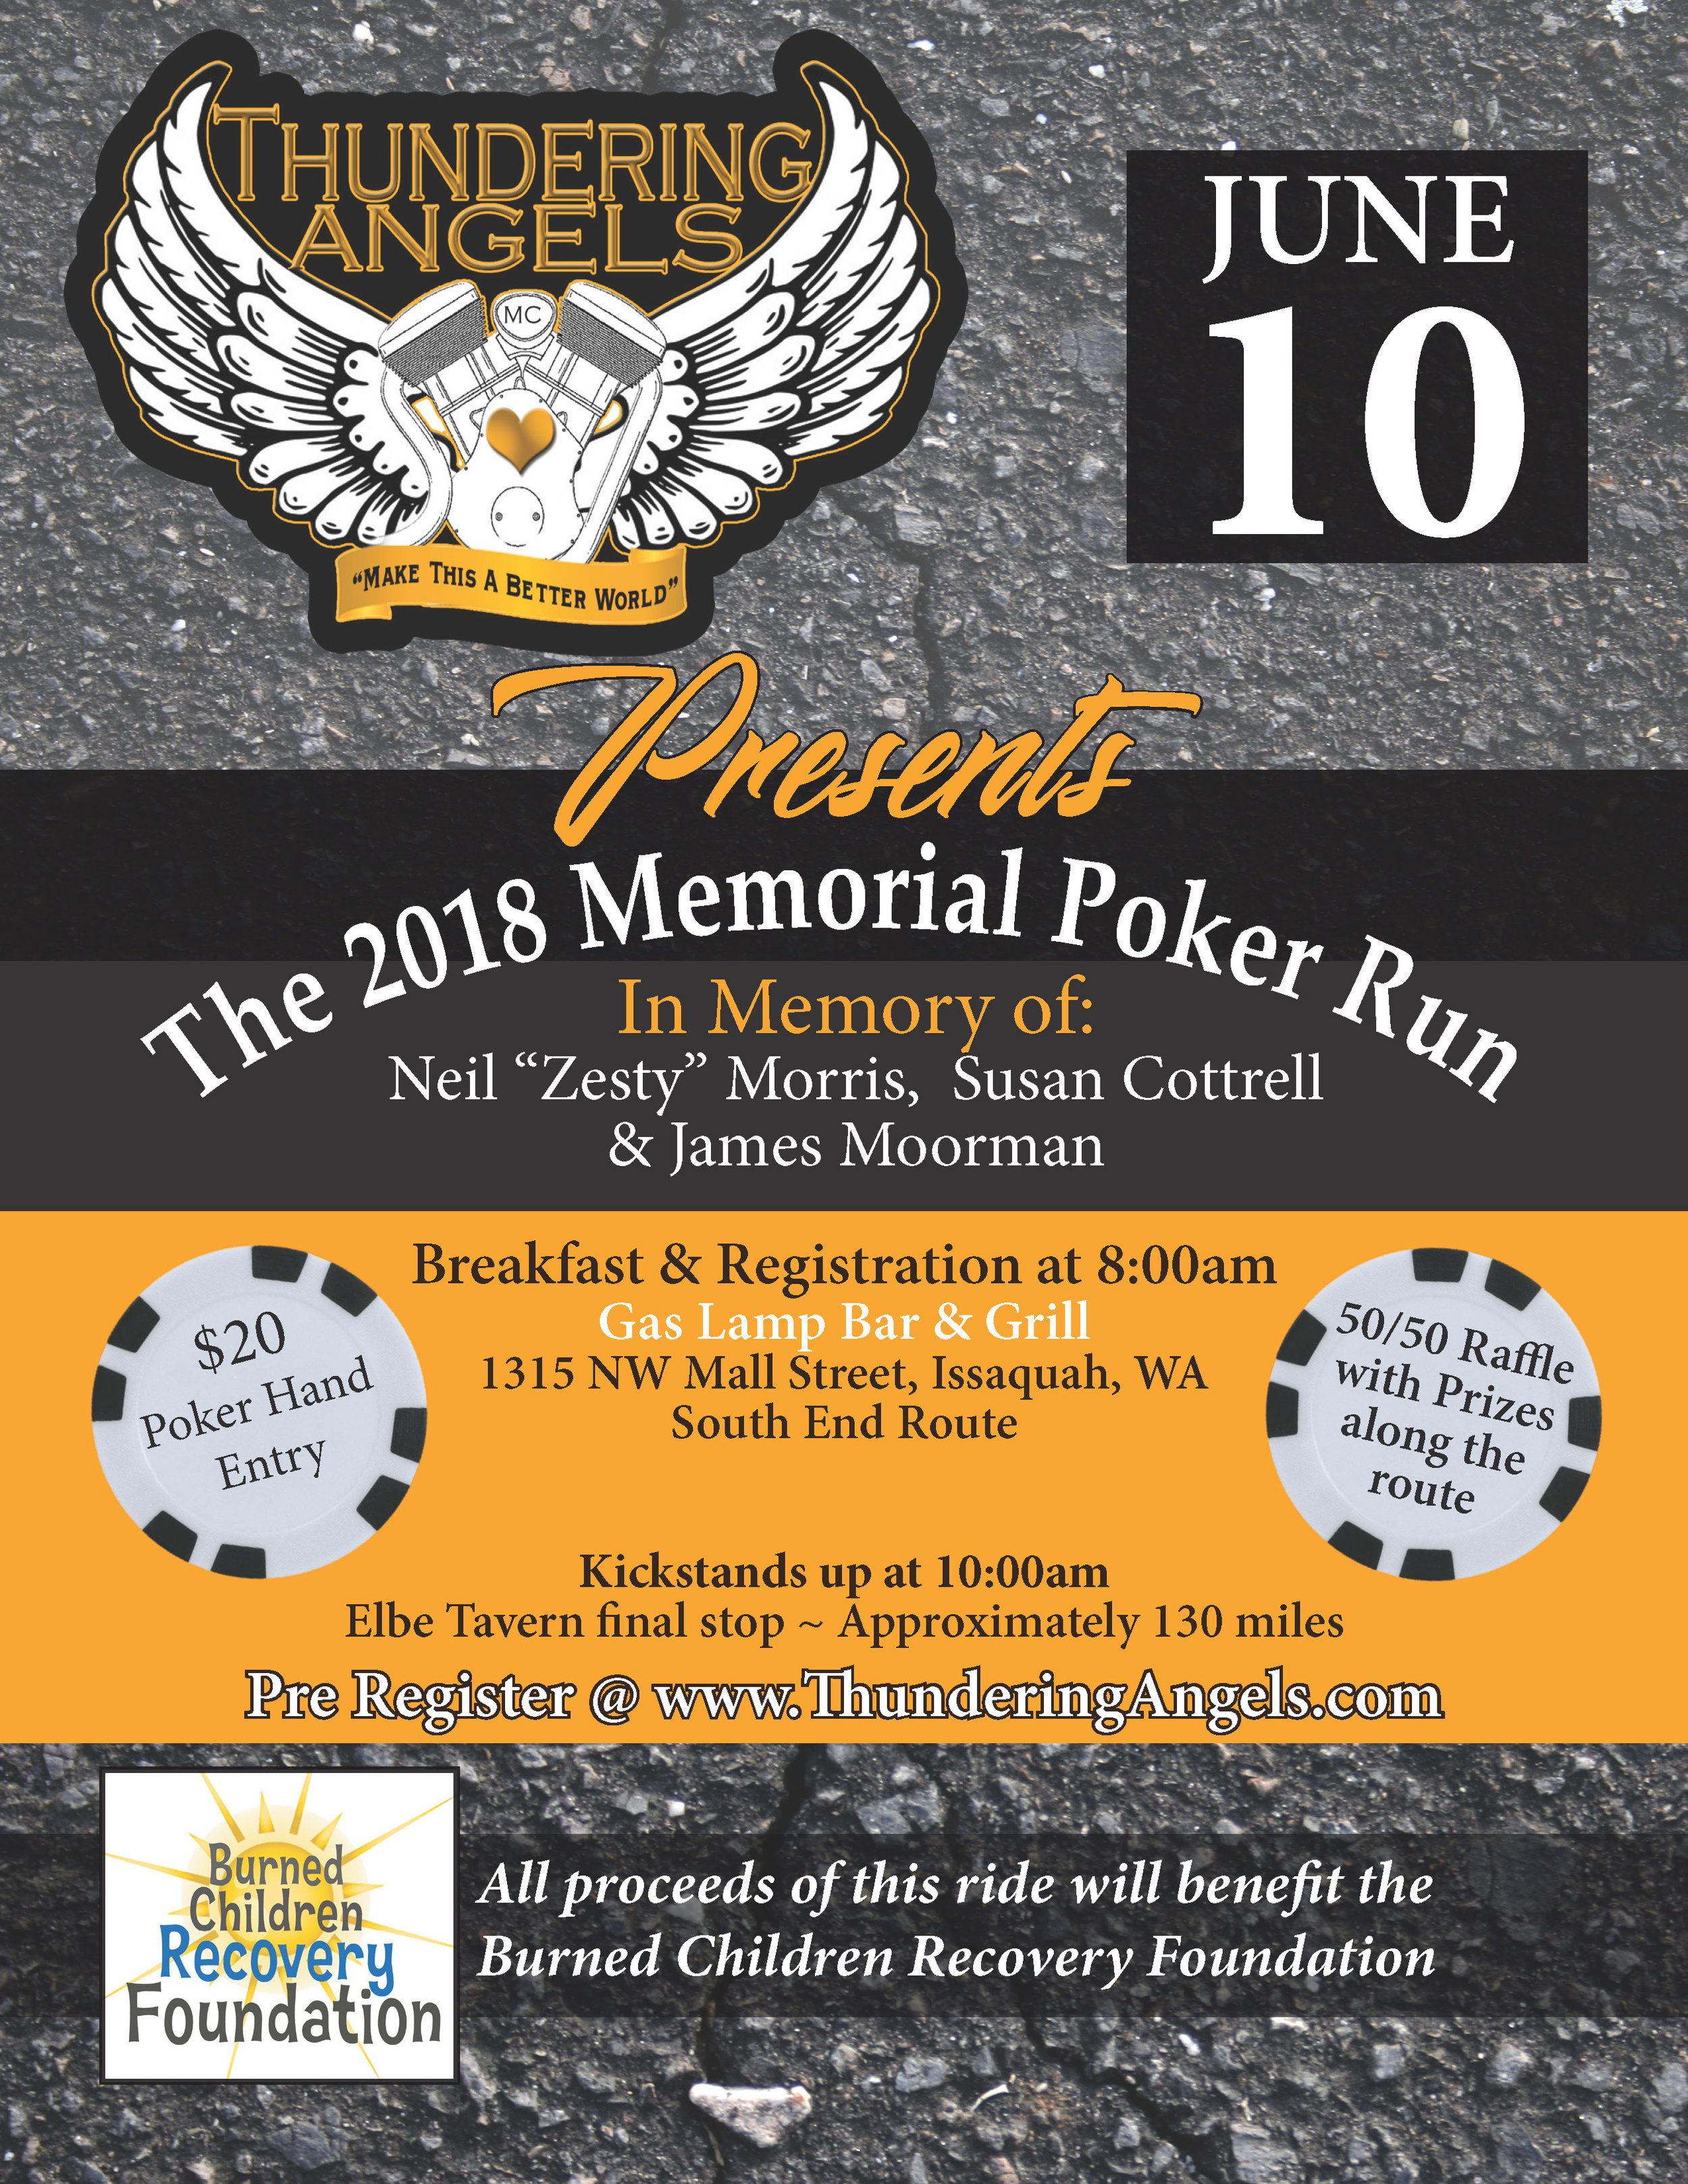 Thundering Angels Poker Run 2018.jpg